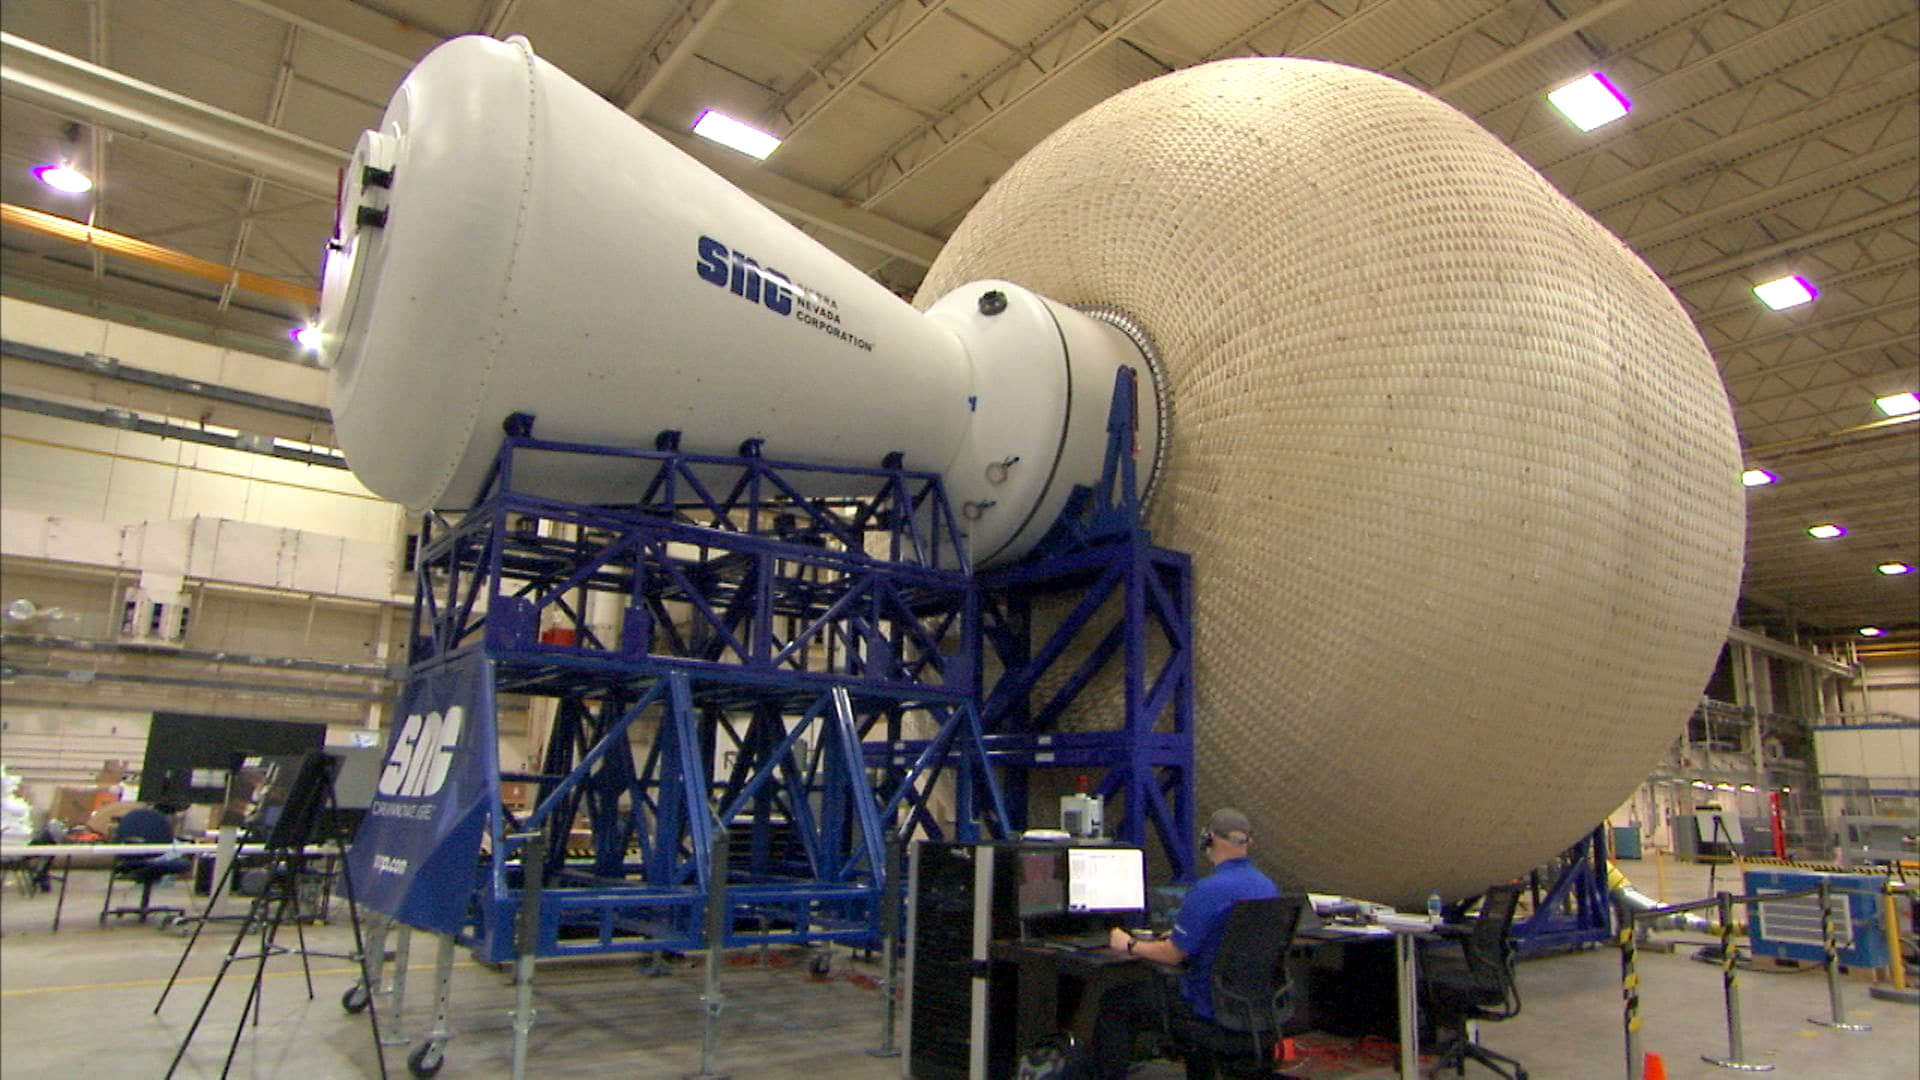 NASA is considering this inflatable space habitat for its return to the moon